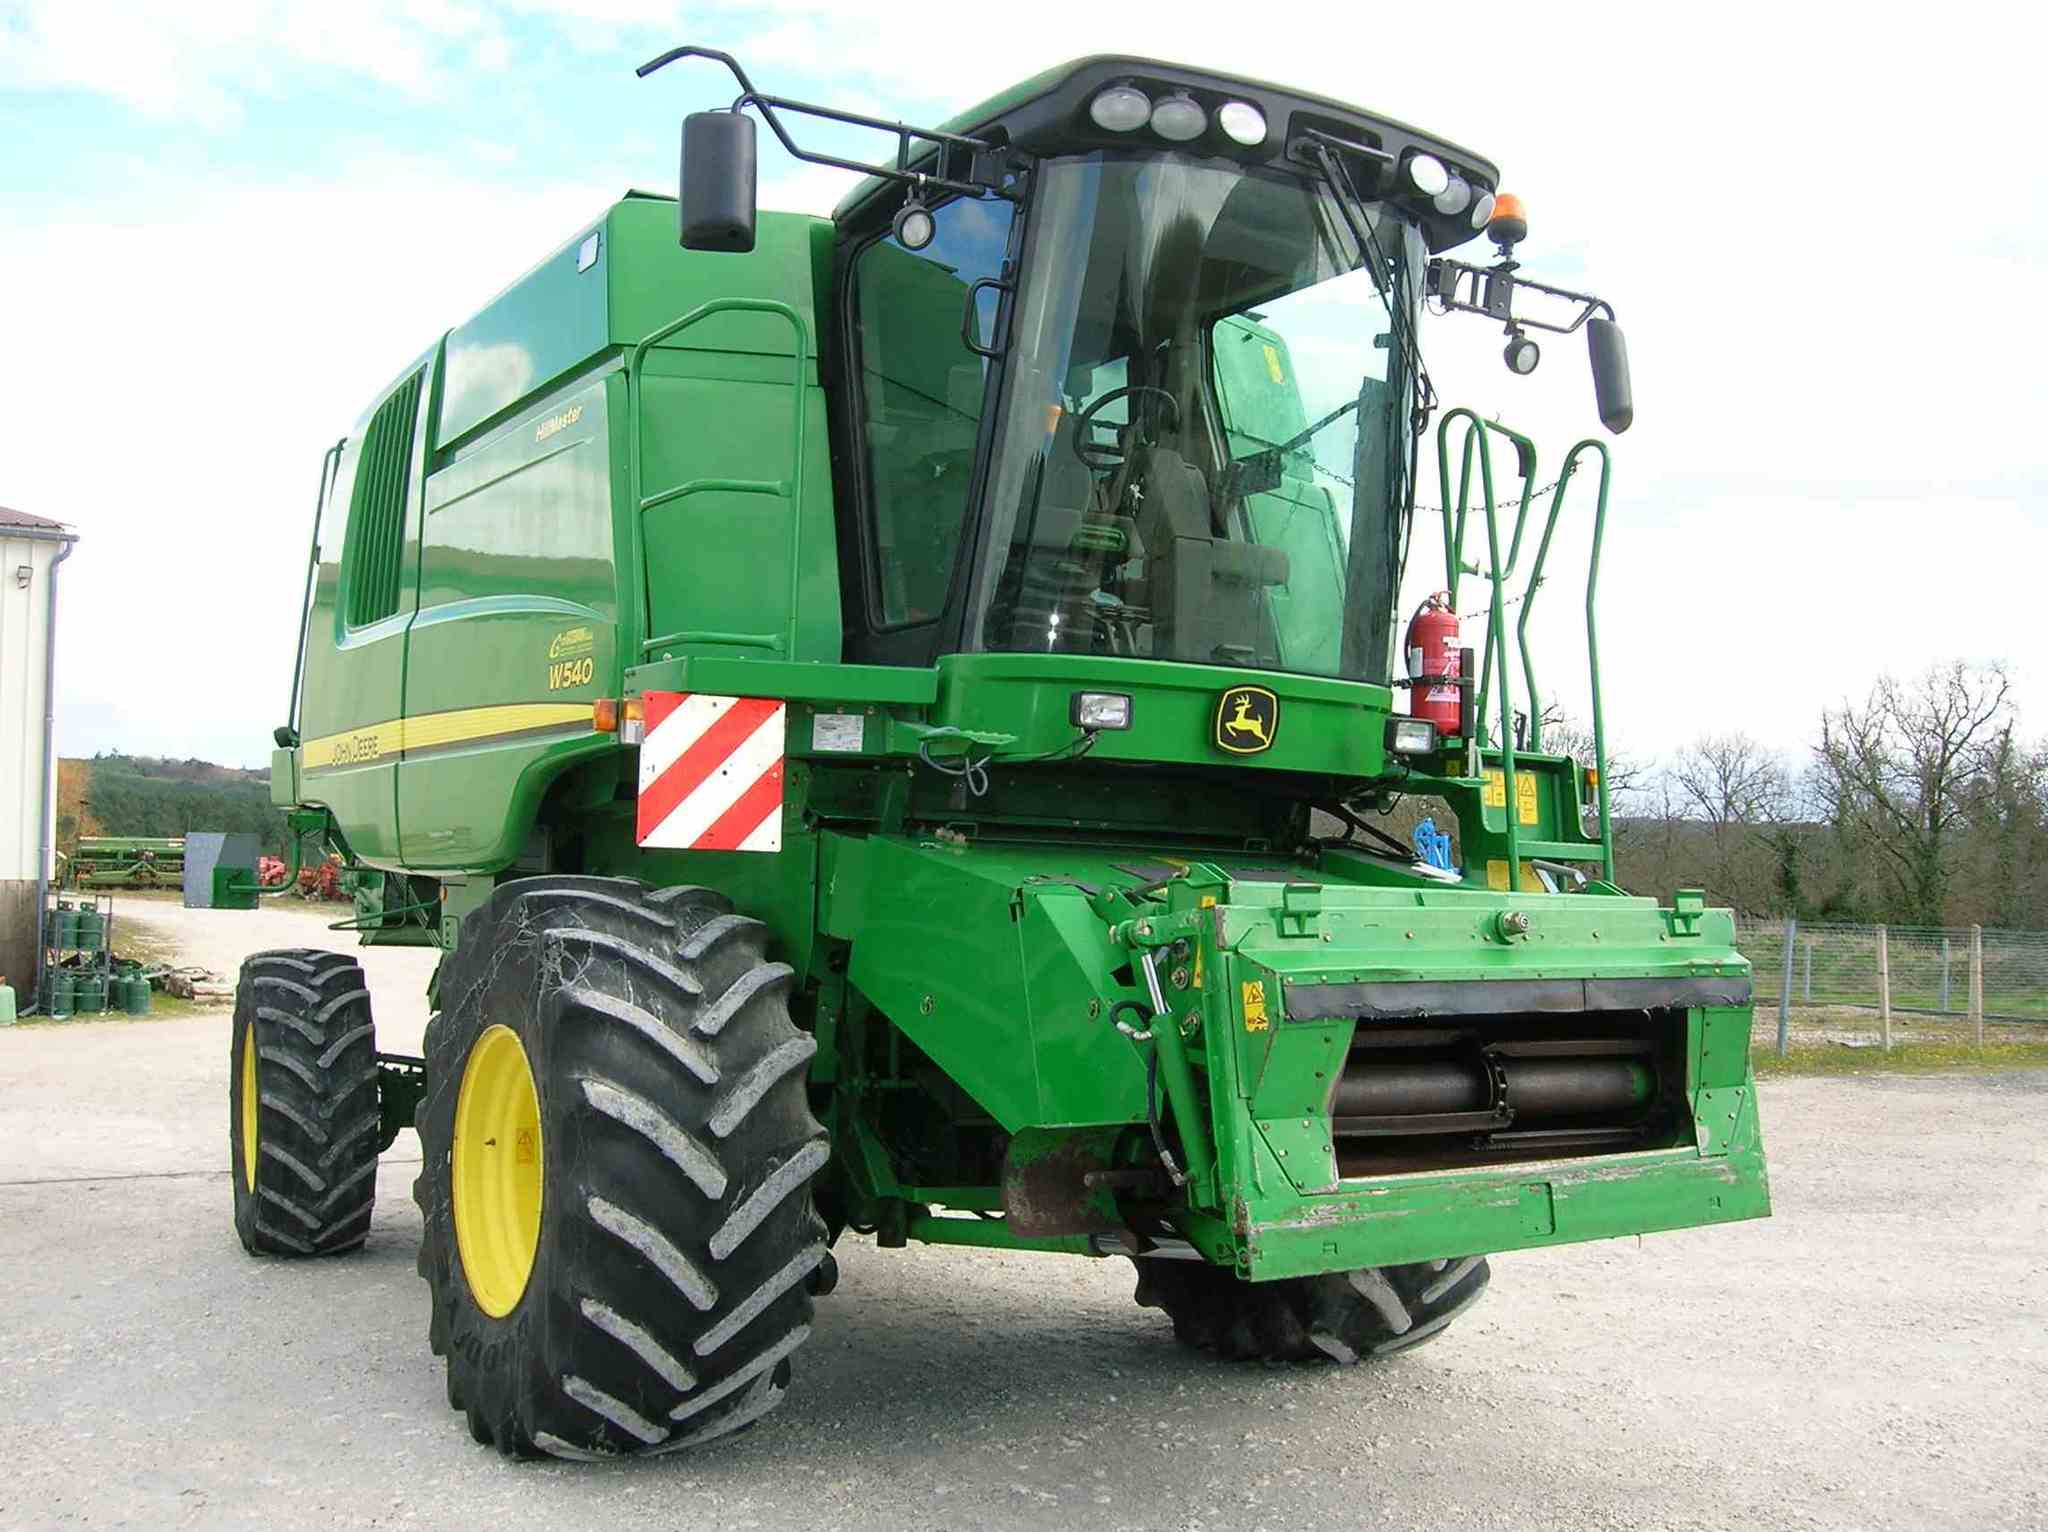 Moissonneuse batteuse John Deere MOISSONNEUSE BATTEUSE W540 HM - 1